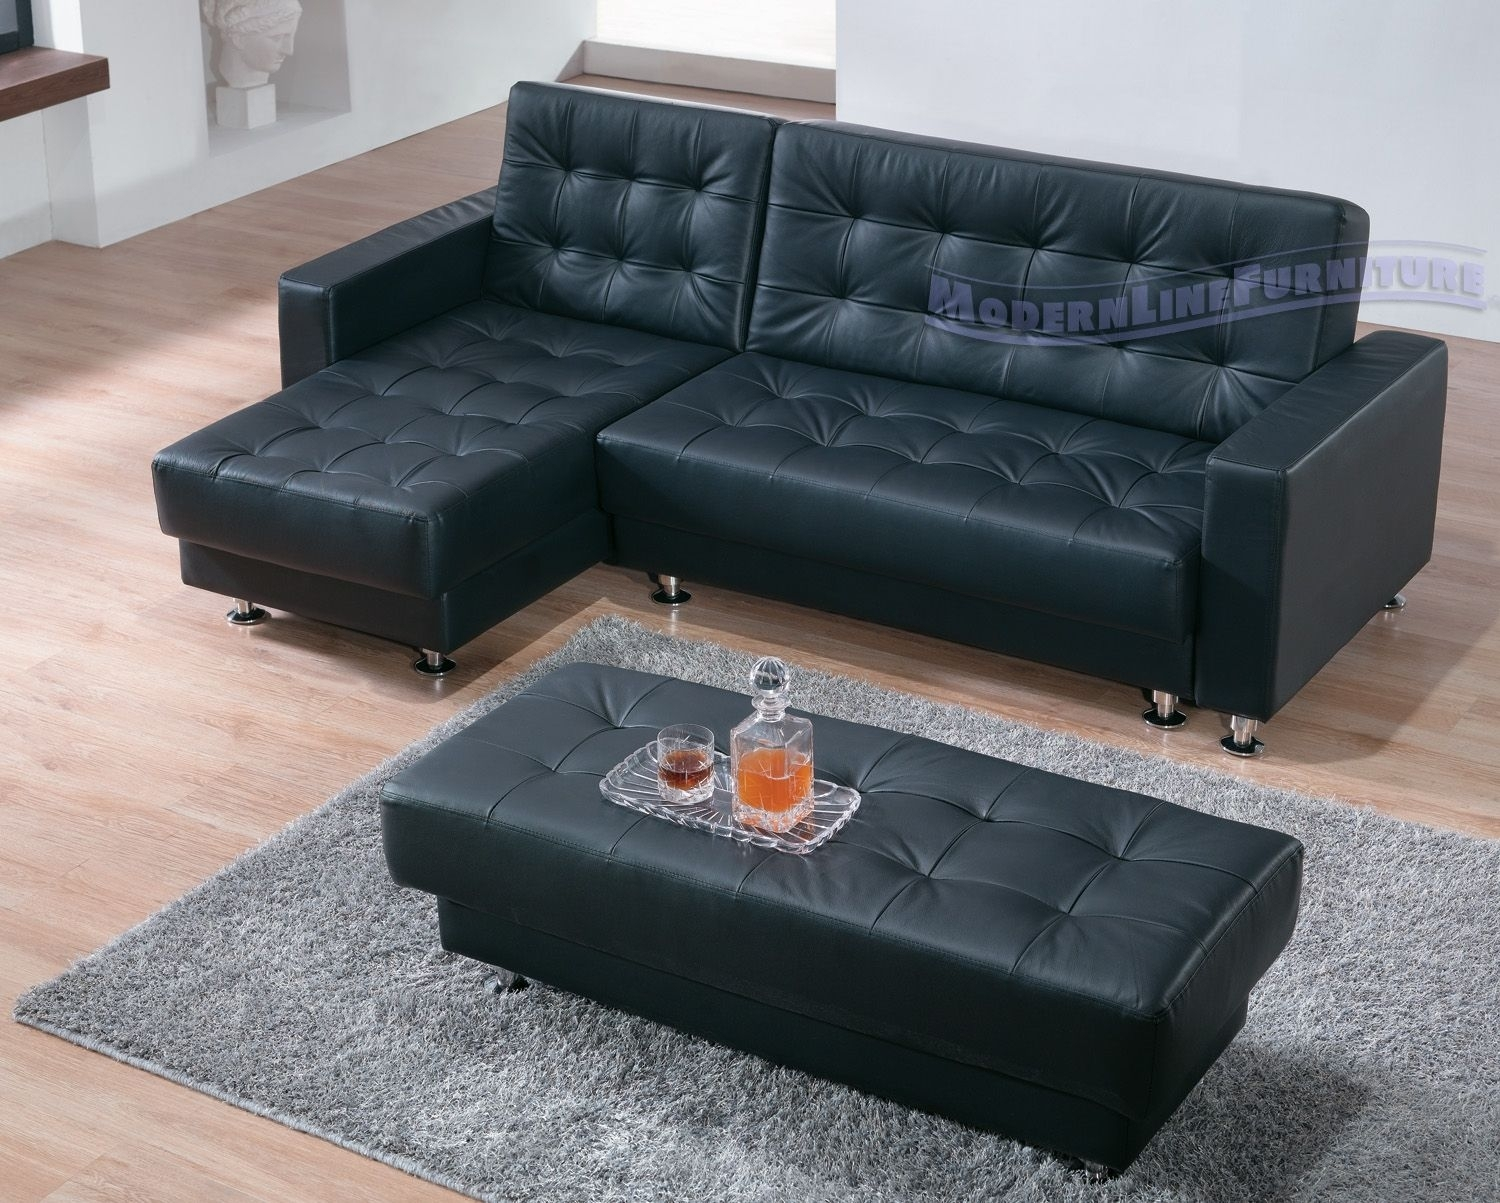 Black Leather Modern Sectional Sofa Sleeper With Ottoman | For The In Sectional Sleeper Sofas With Ottoman (View 6 of 10)